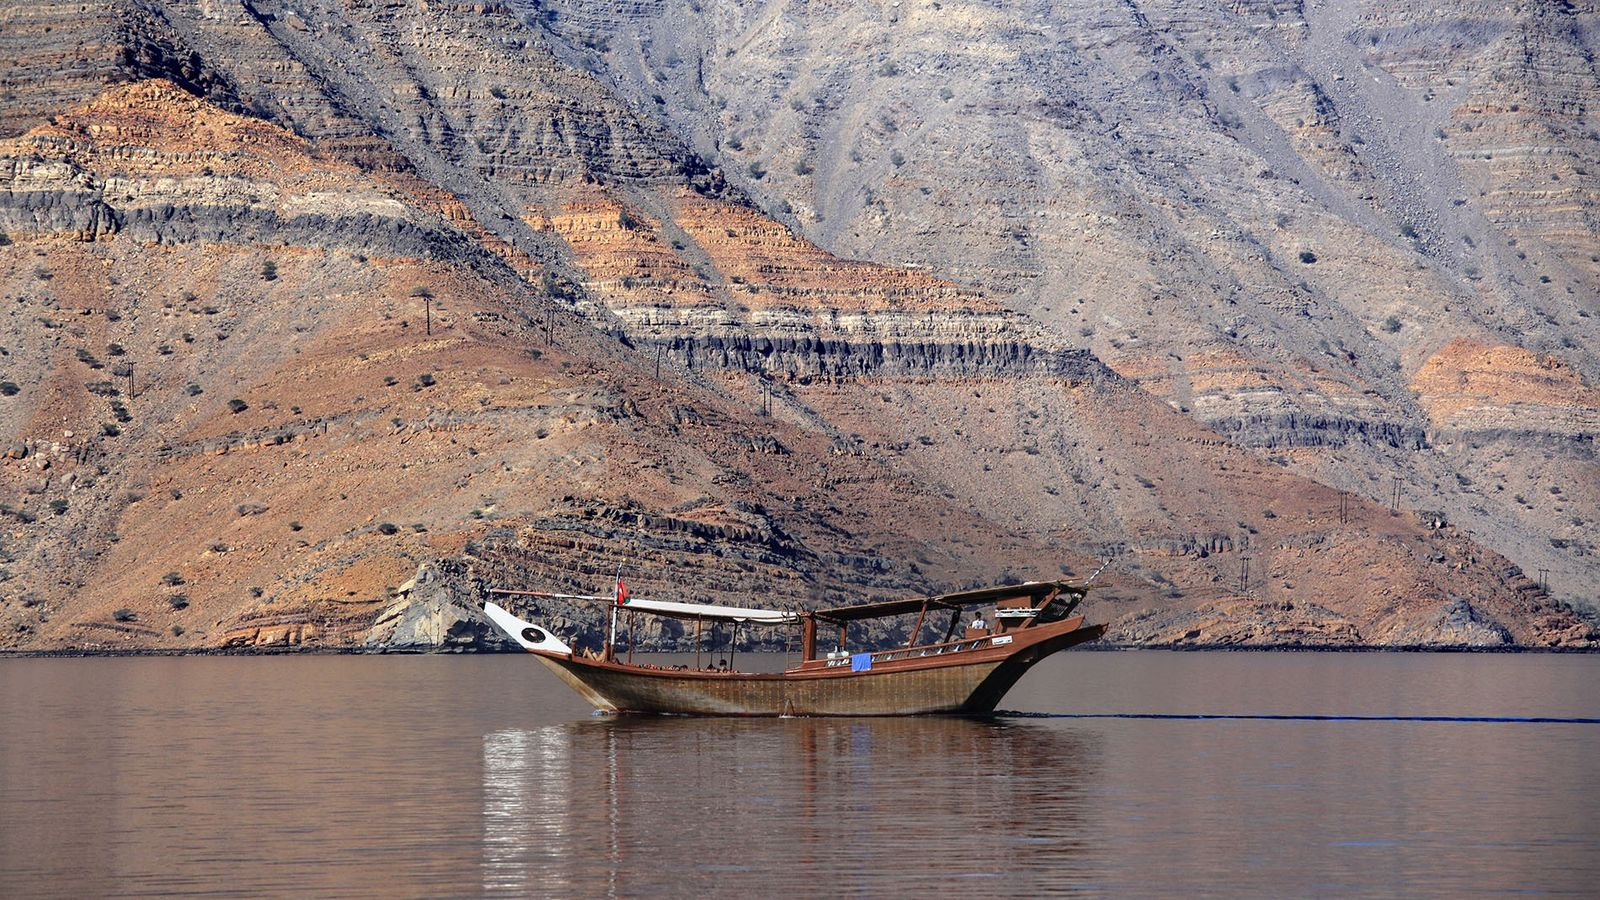 The narrow inlets of the Musandam Fjords have earned it the title, the 'Norway of Arabia.'